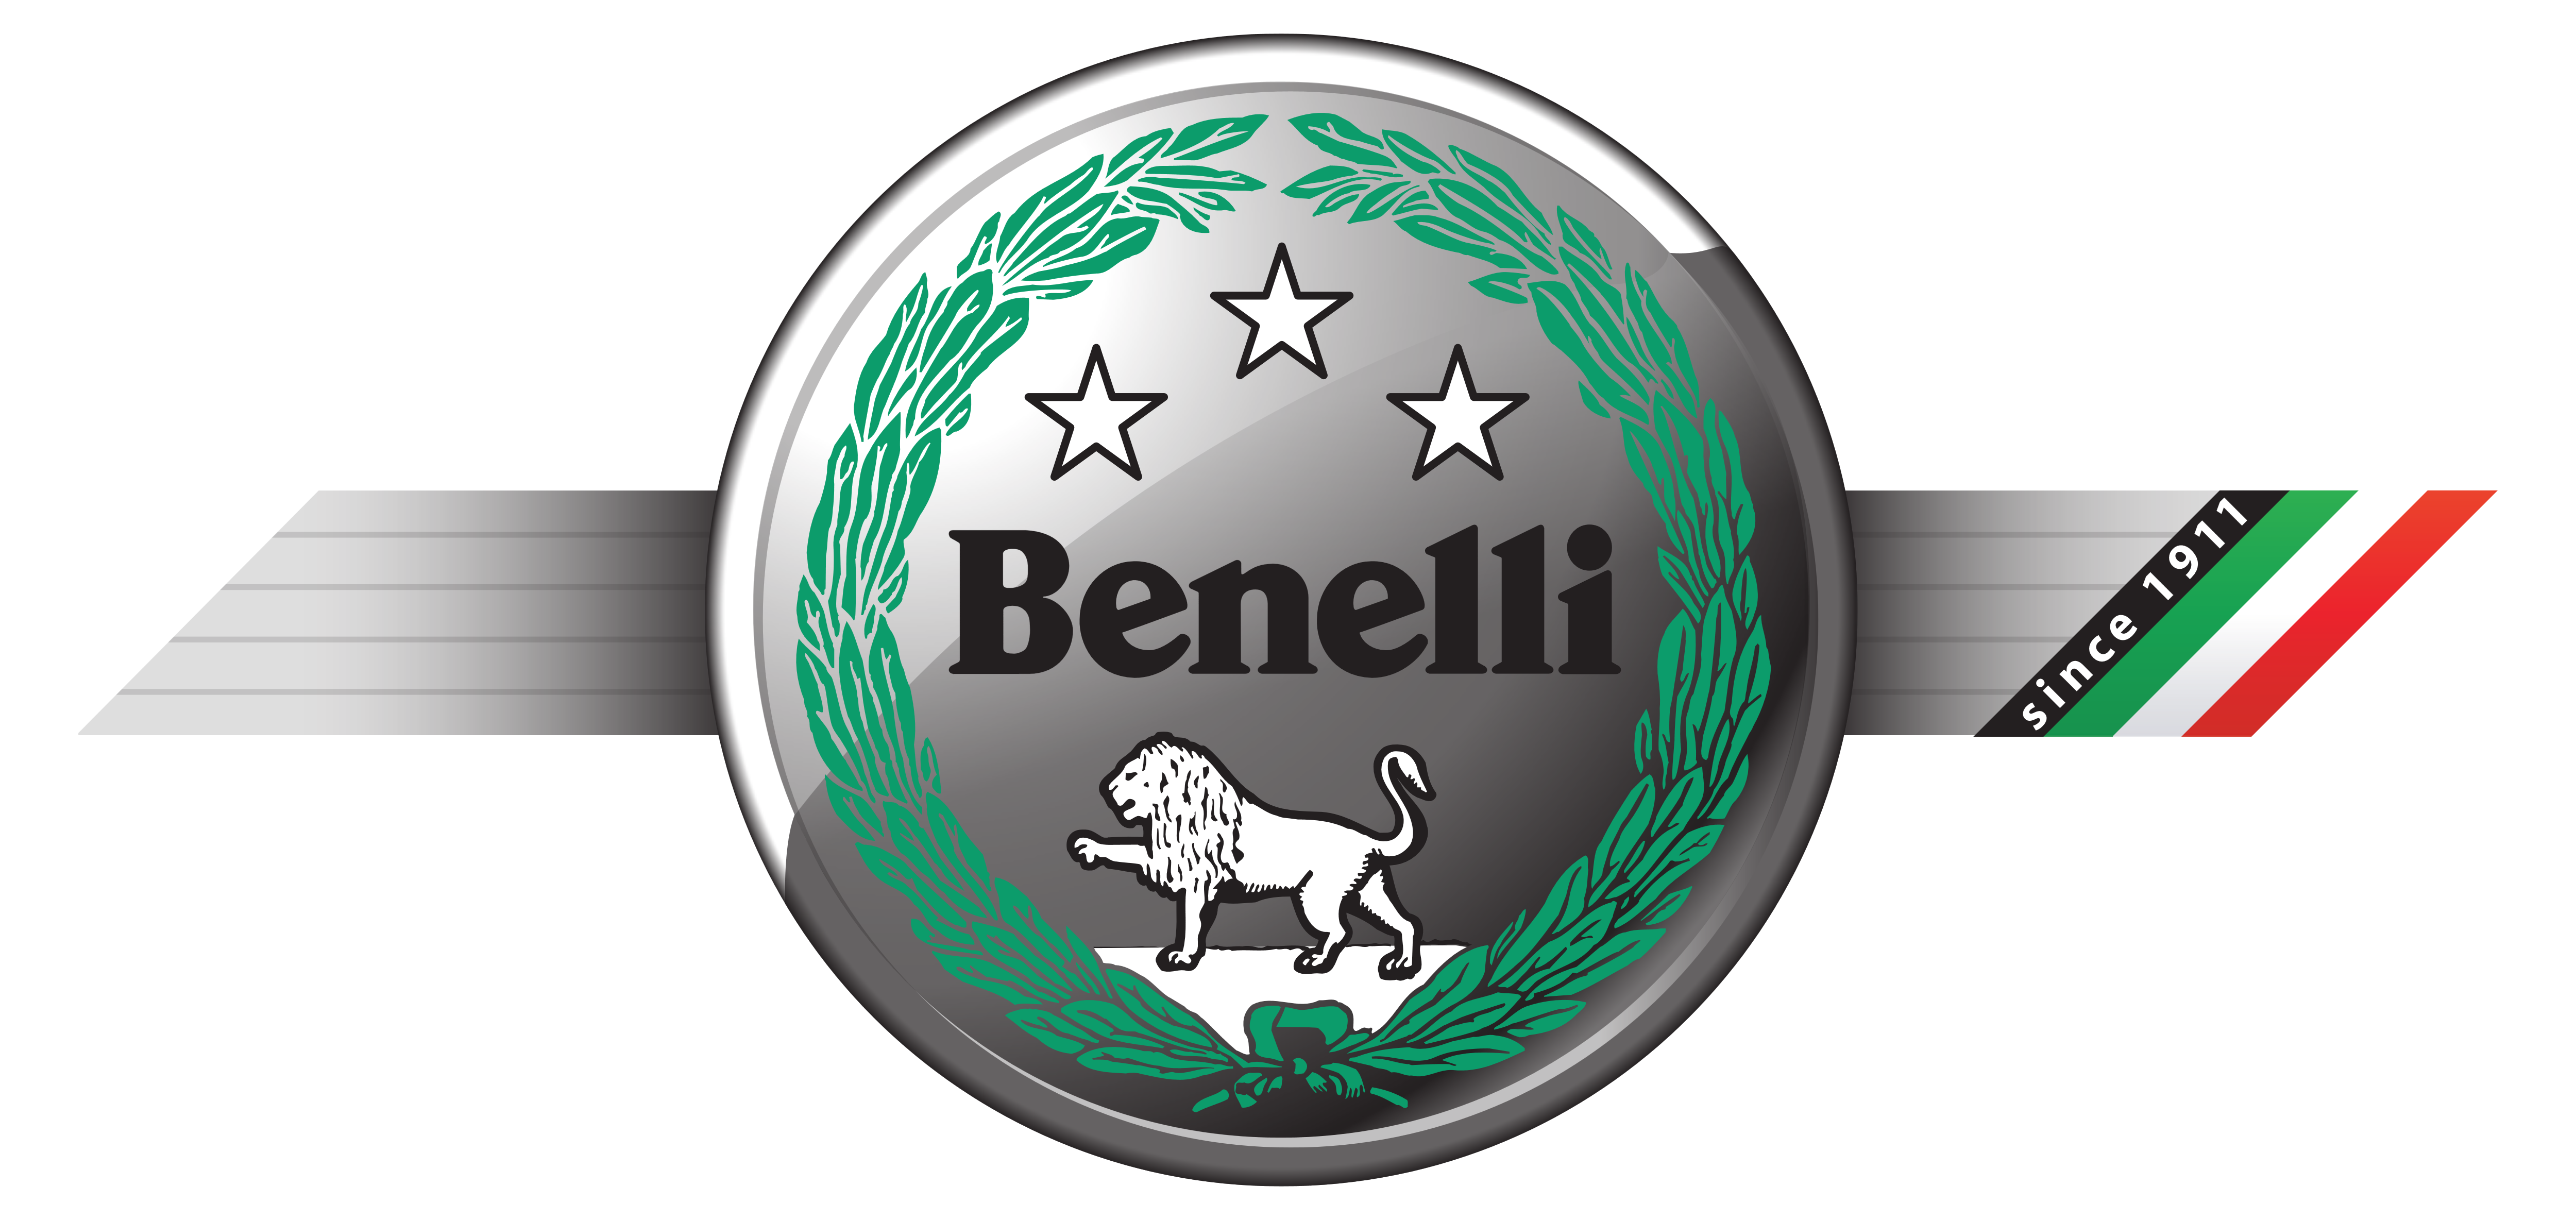 company brand benelli logos download #32535